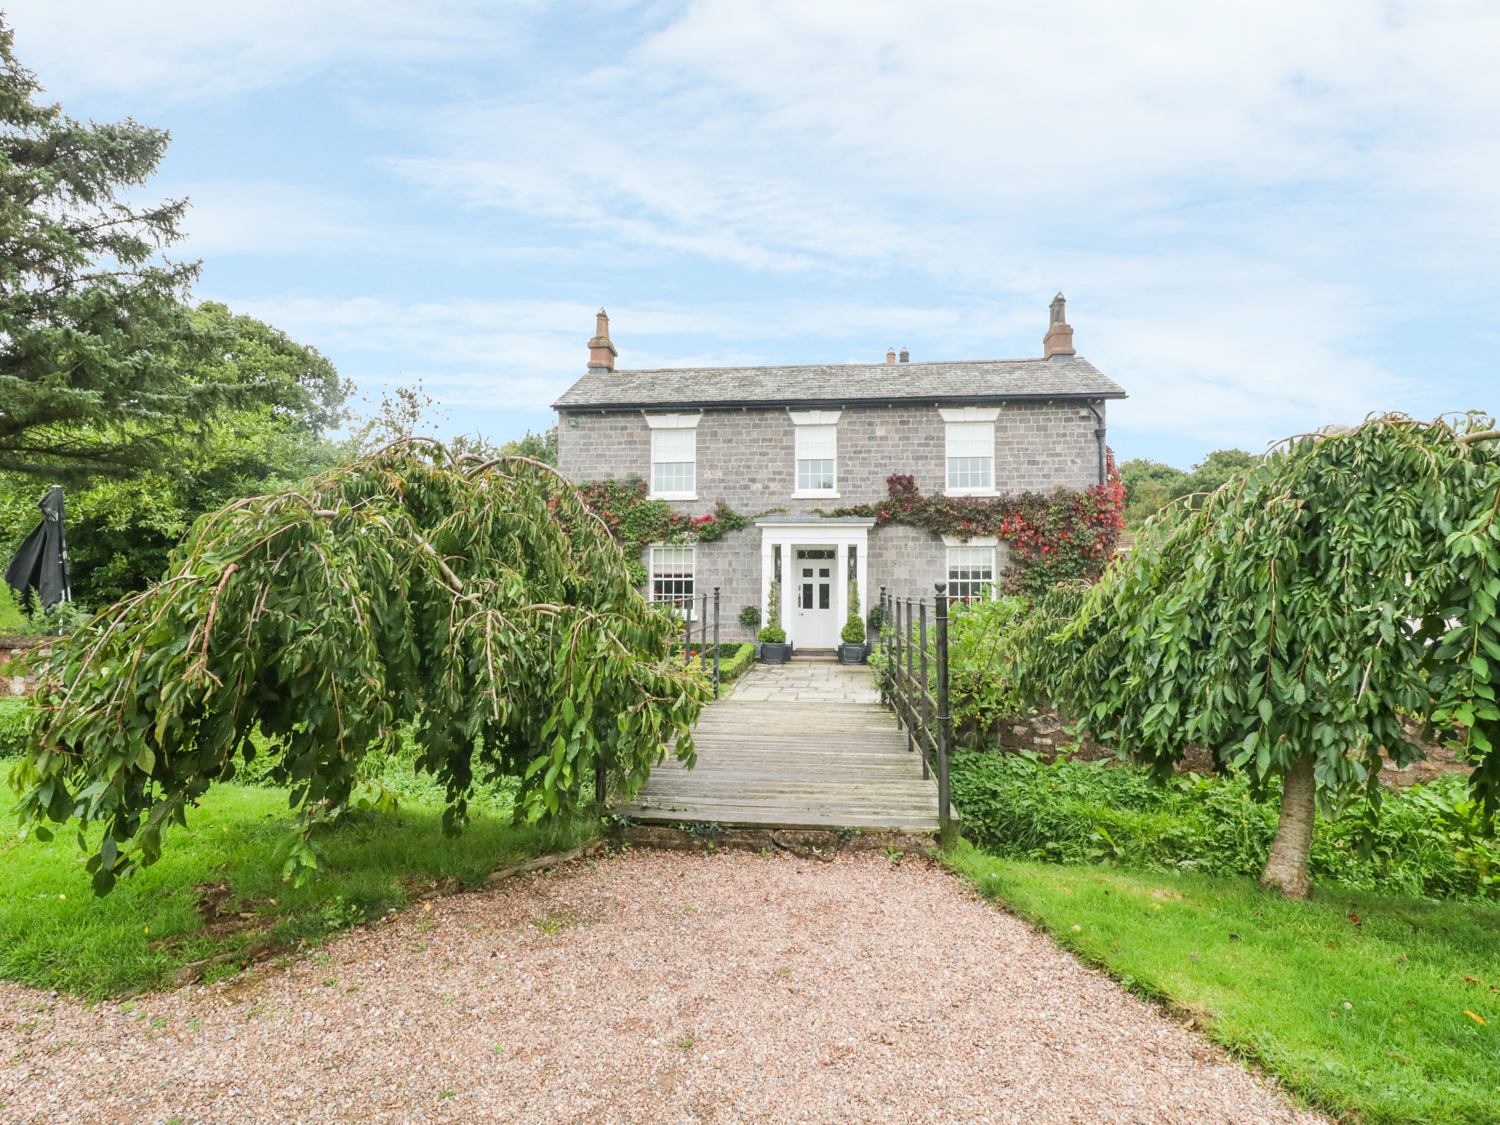 7 bedroom Cottage for rent in Cullompton